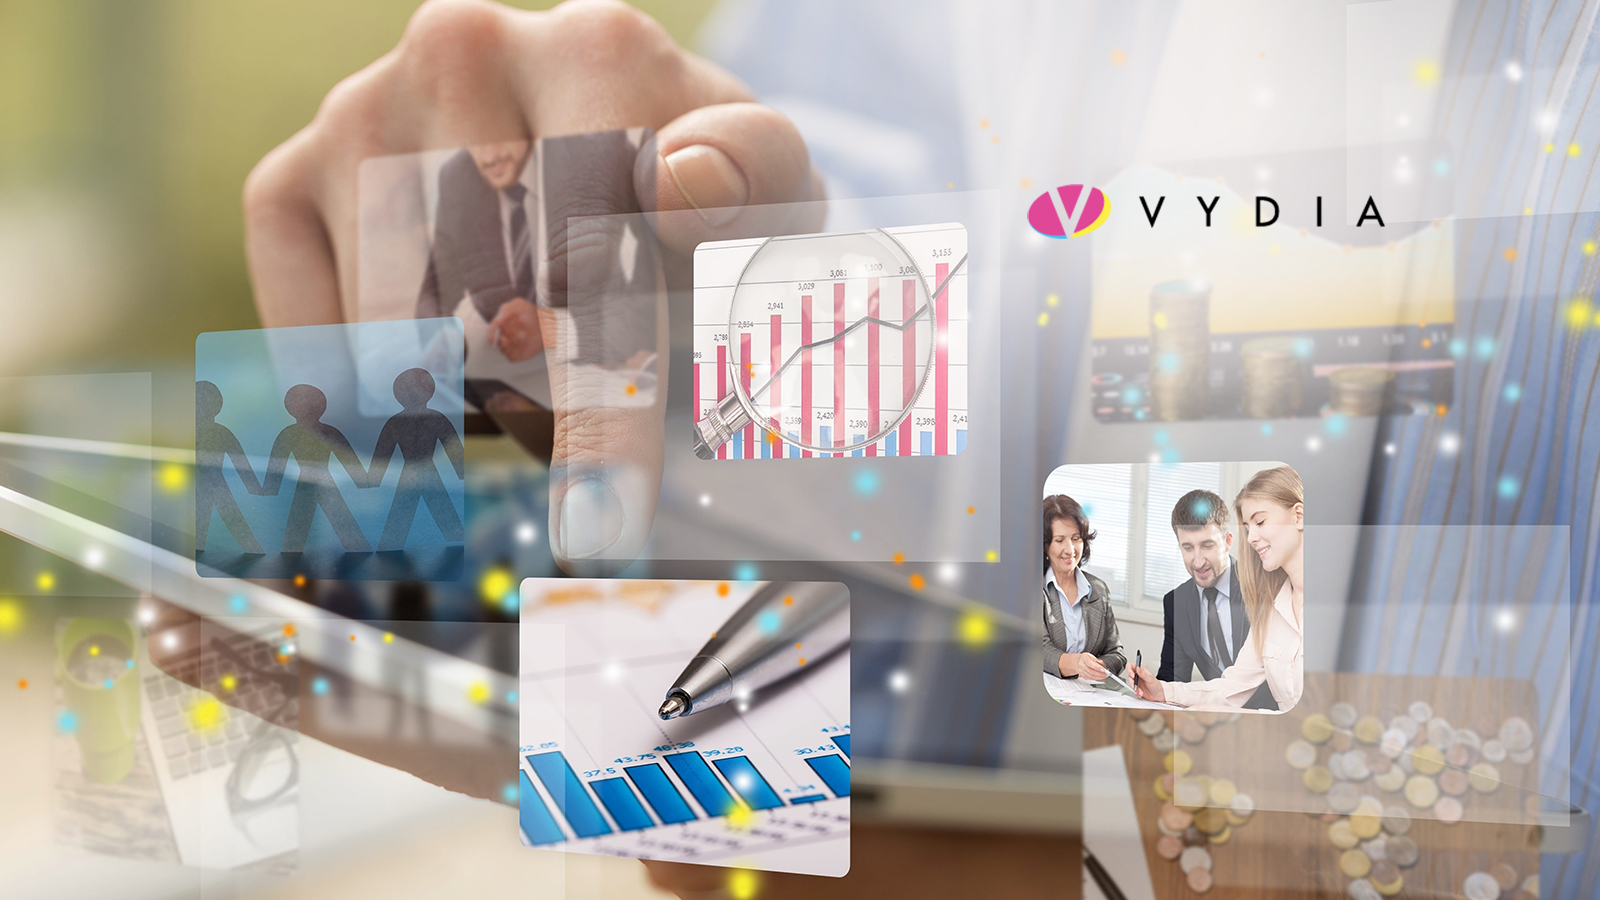 Vydia Ranked One Of The Fastest Growing Companies On